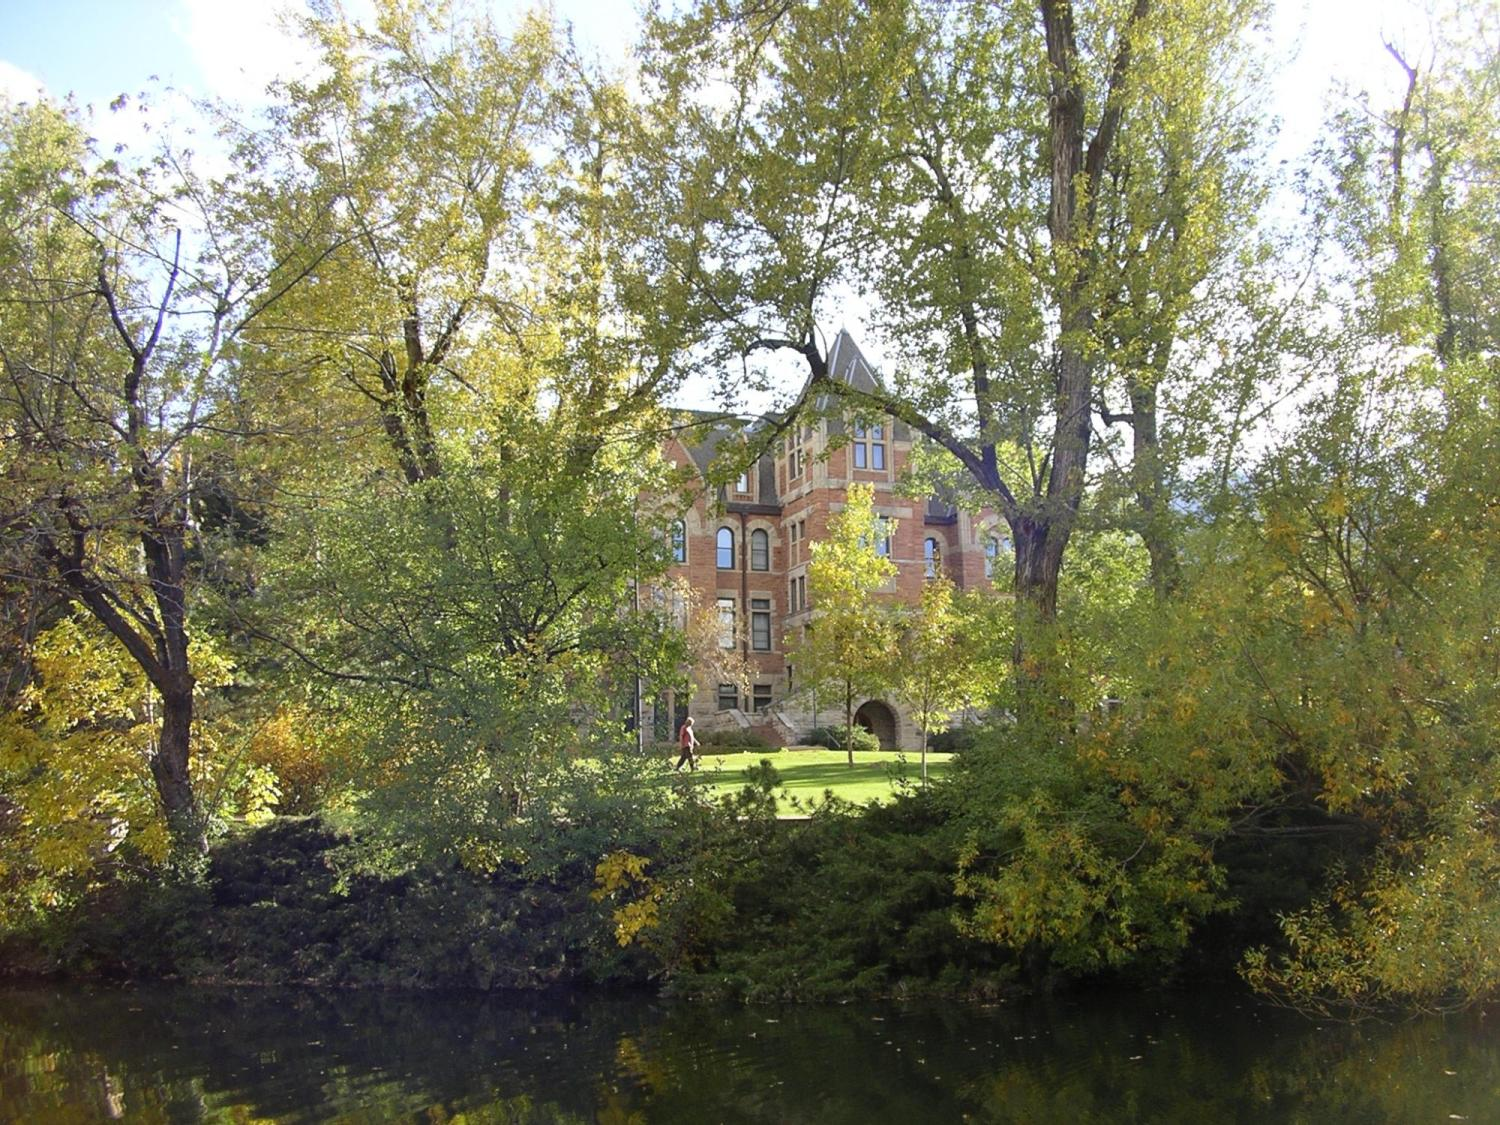 Photo of Hale Building through the trees